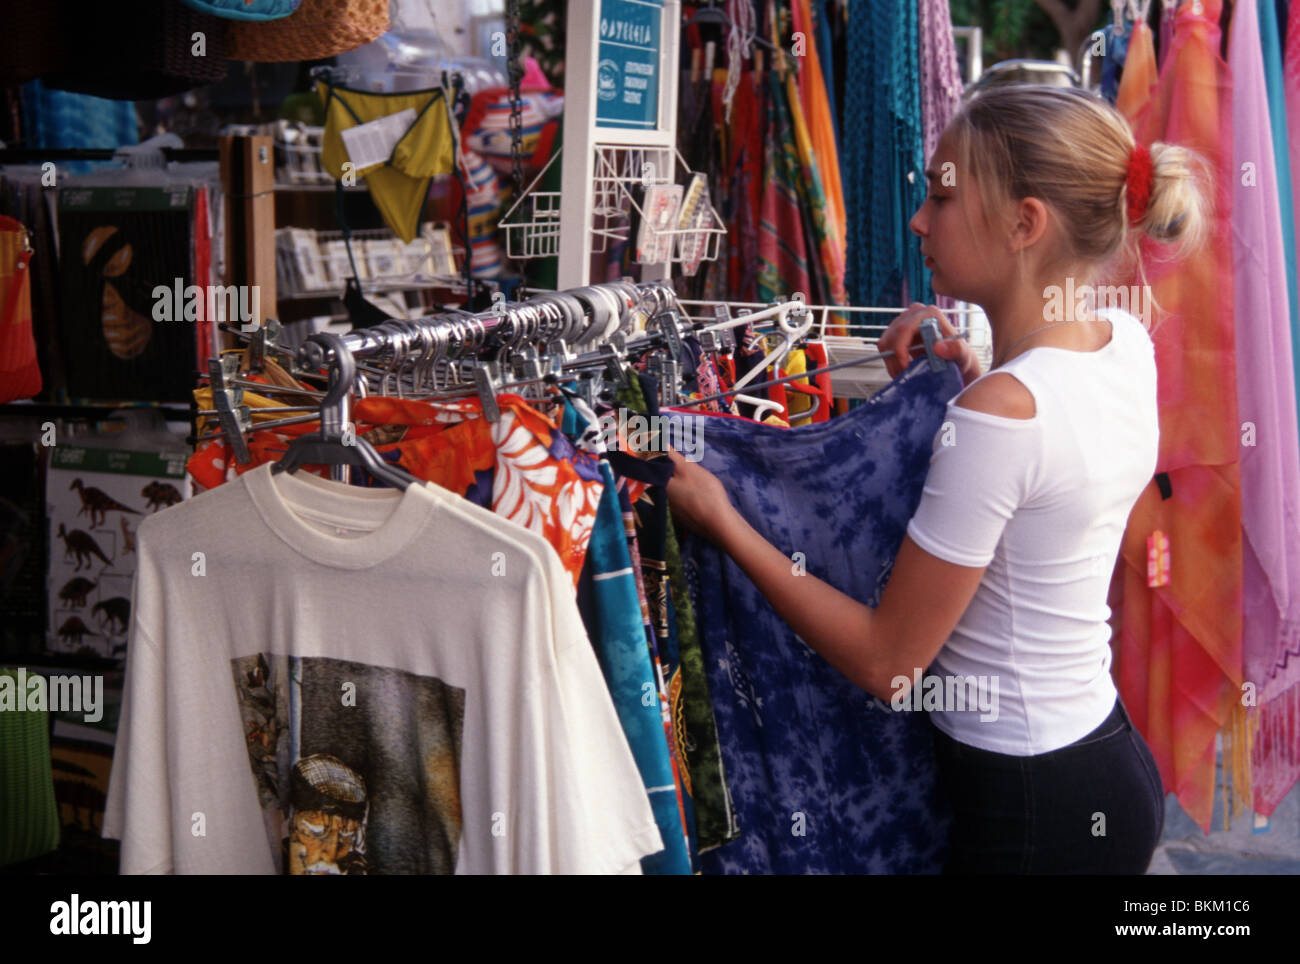 Teenage girl shopping for clothes in Greece - Stock Image